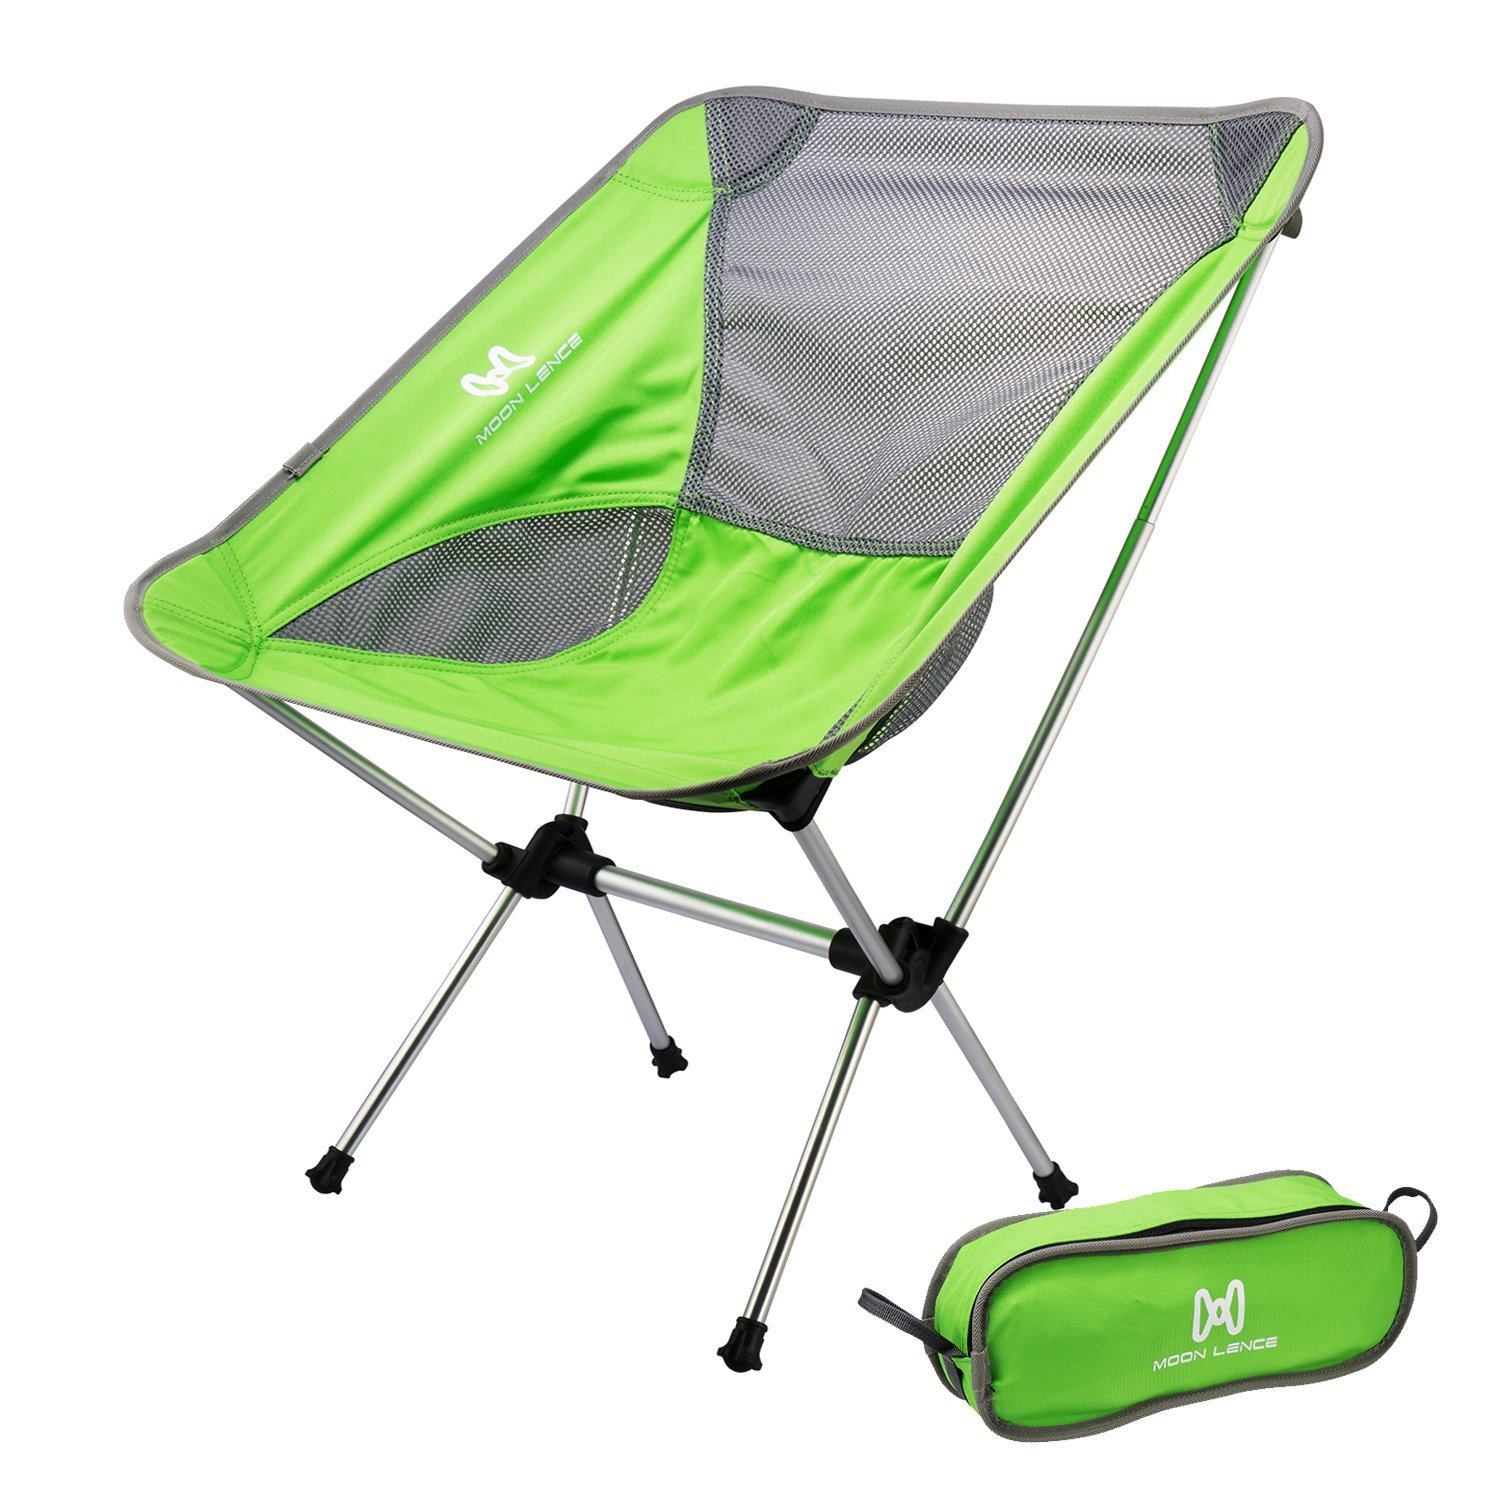 Top 10 Most fortable Folding Chairs for Sports and Outdoors